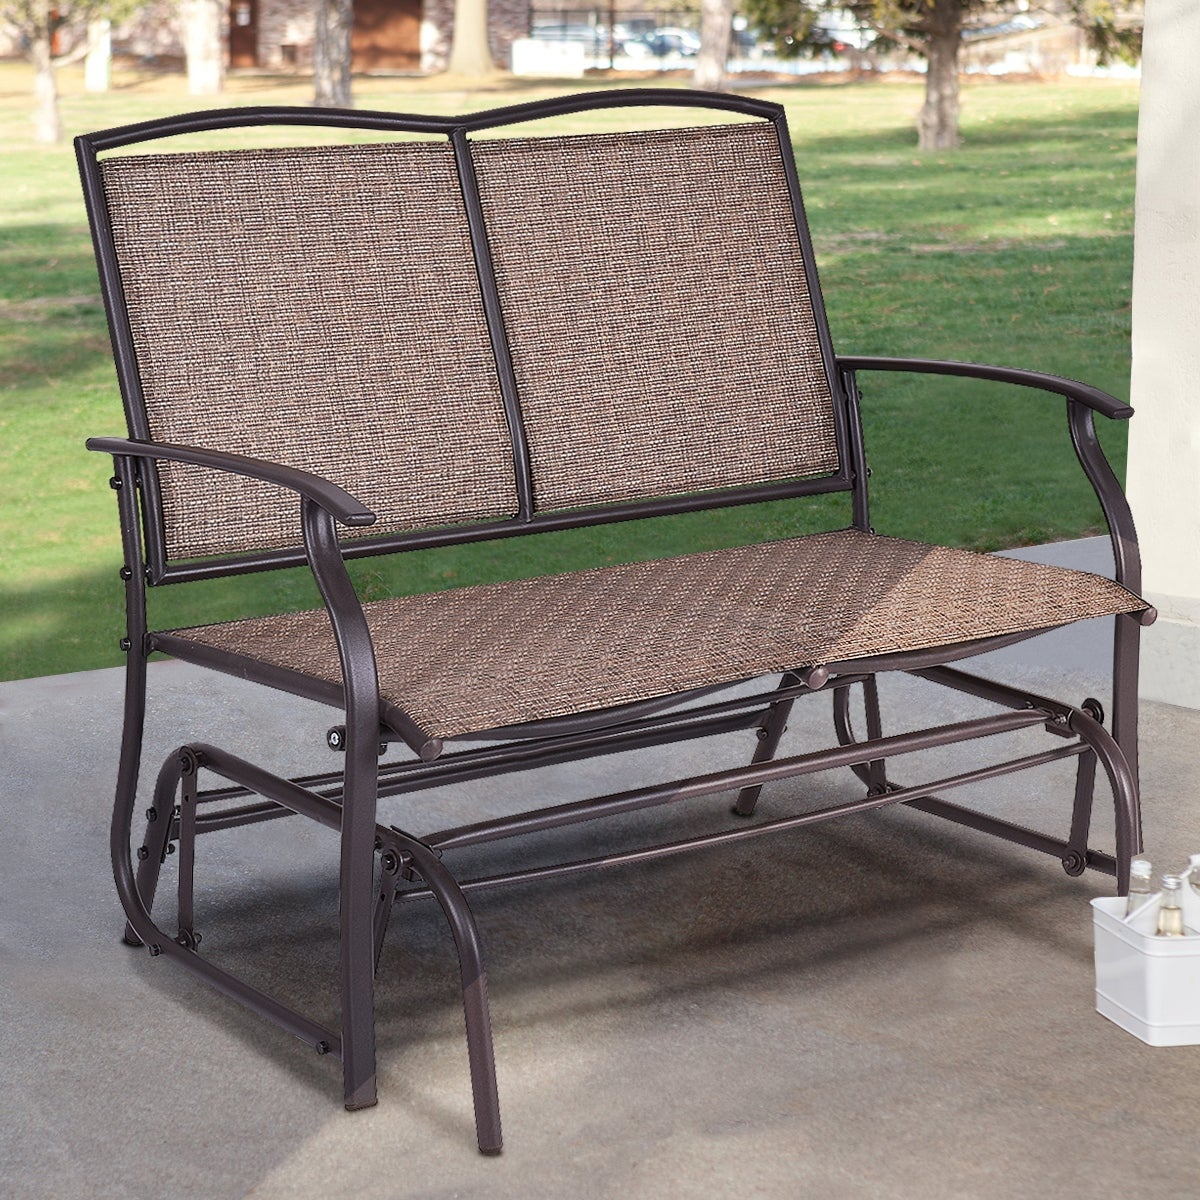 Costway Patio Glider Rocking Bench Double 2 Person Chair Loveseat Armchair  Backyard Pertaining To Double Glider Benches With Cushion (Image 4 of 25)